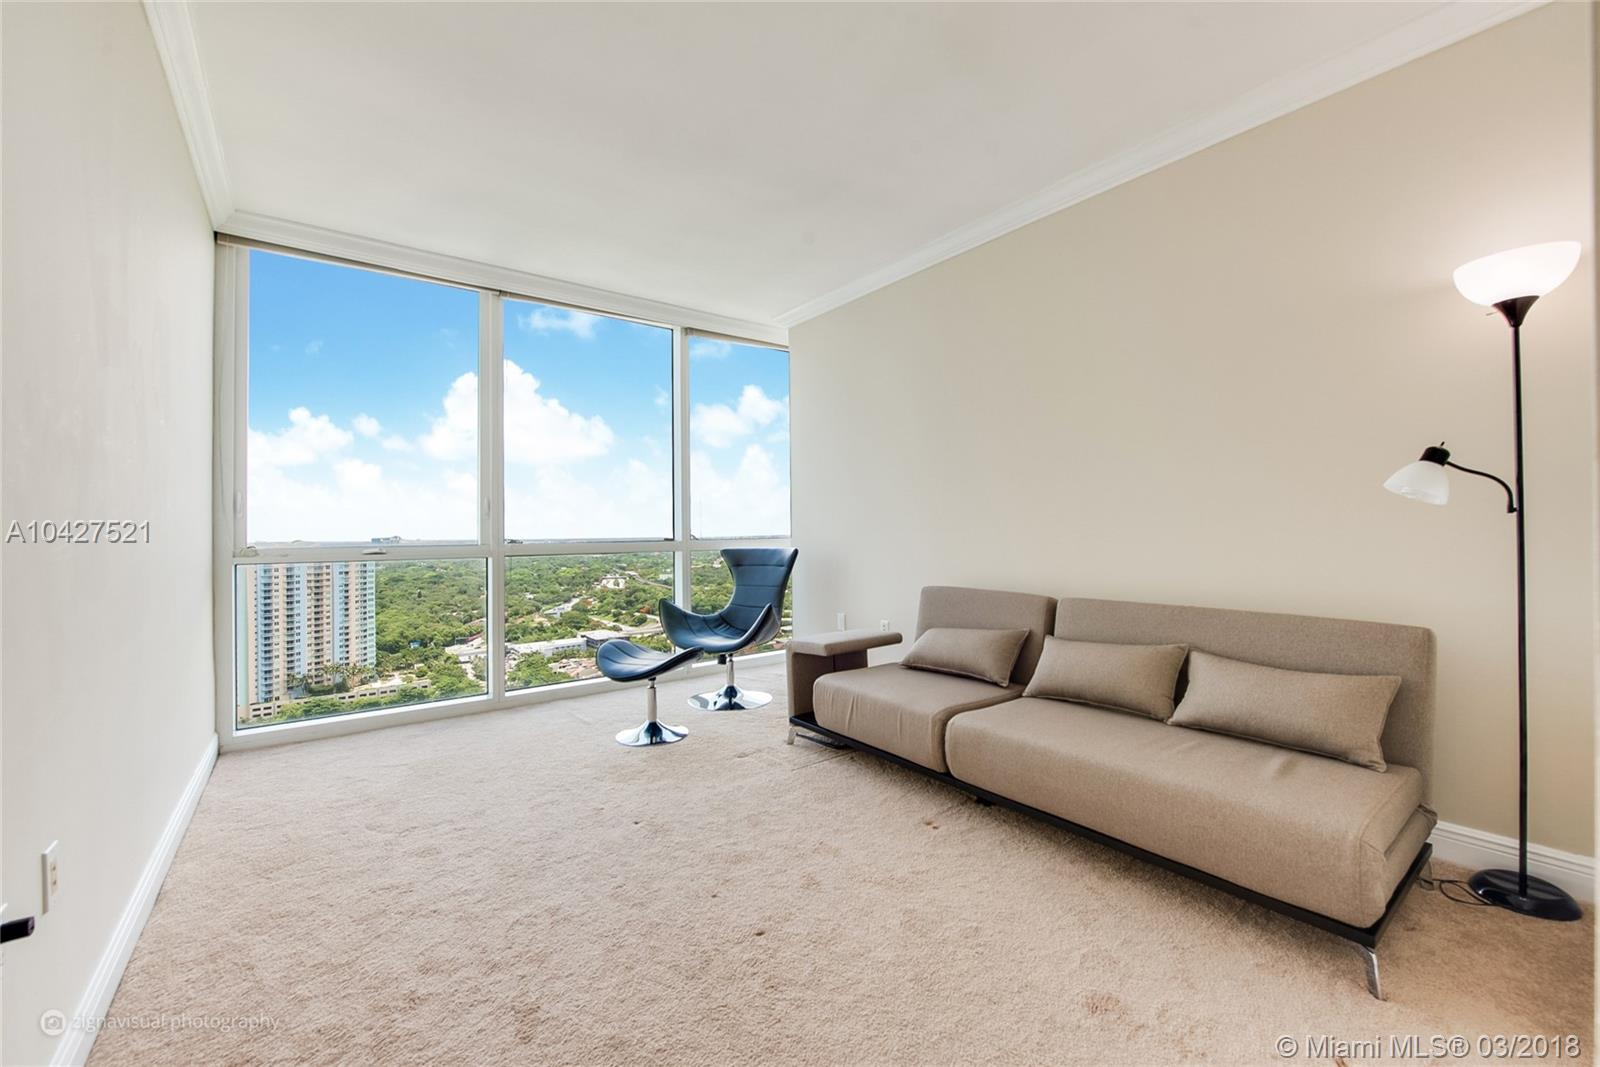 2101 Brickell Ave #3108, Miami FL, 33129